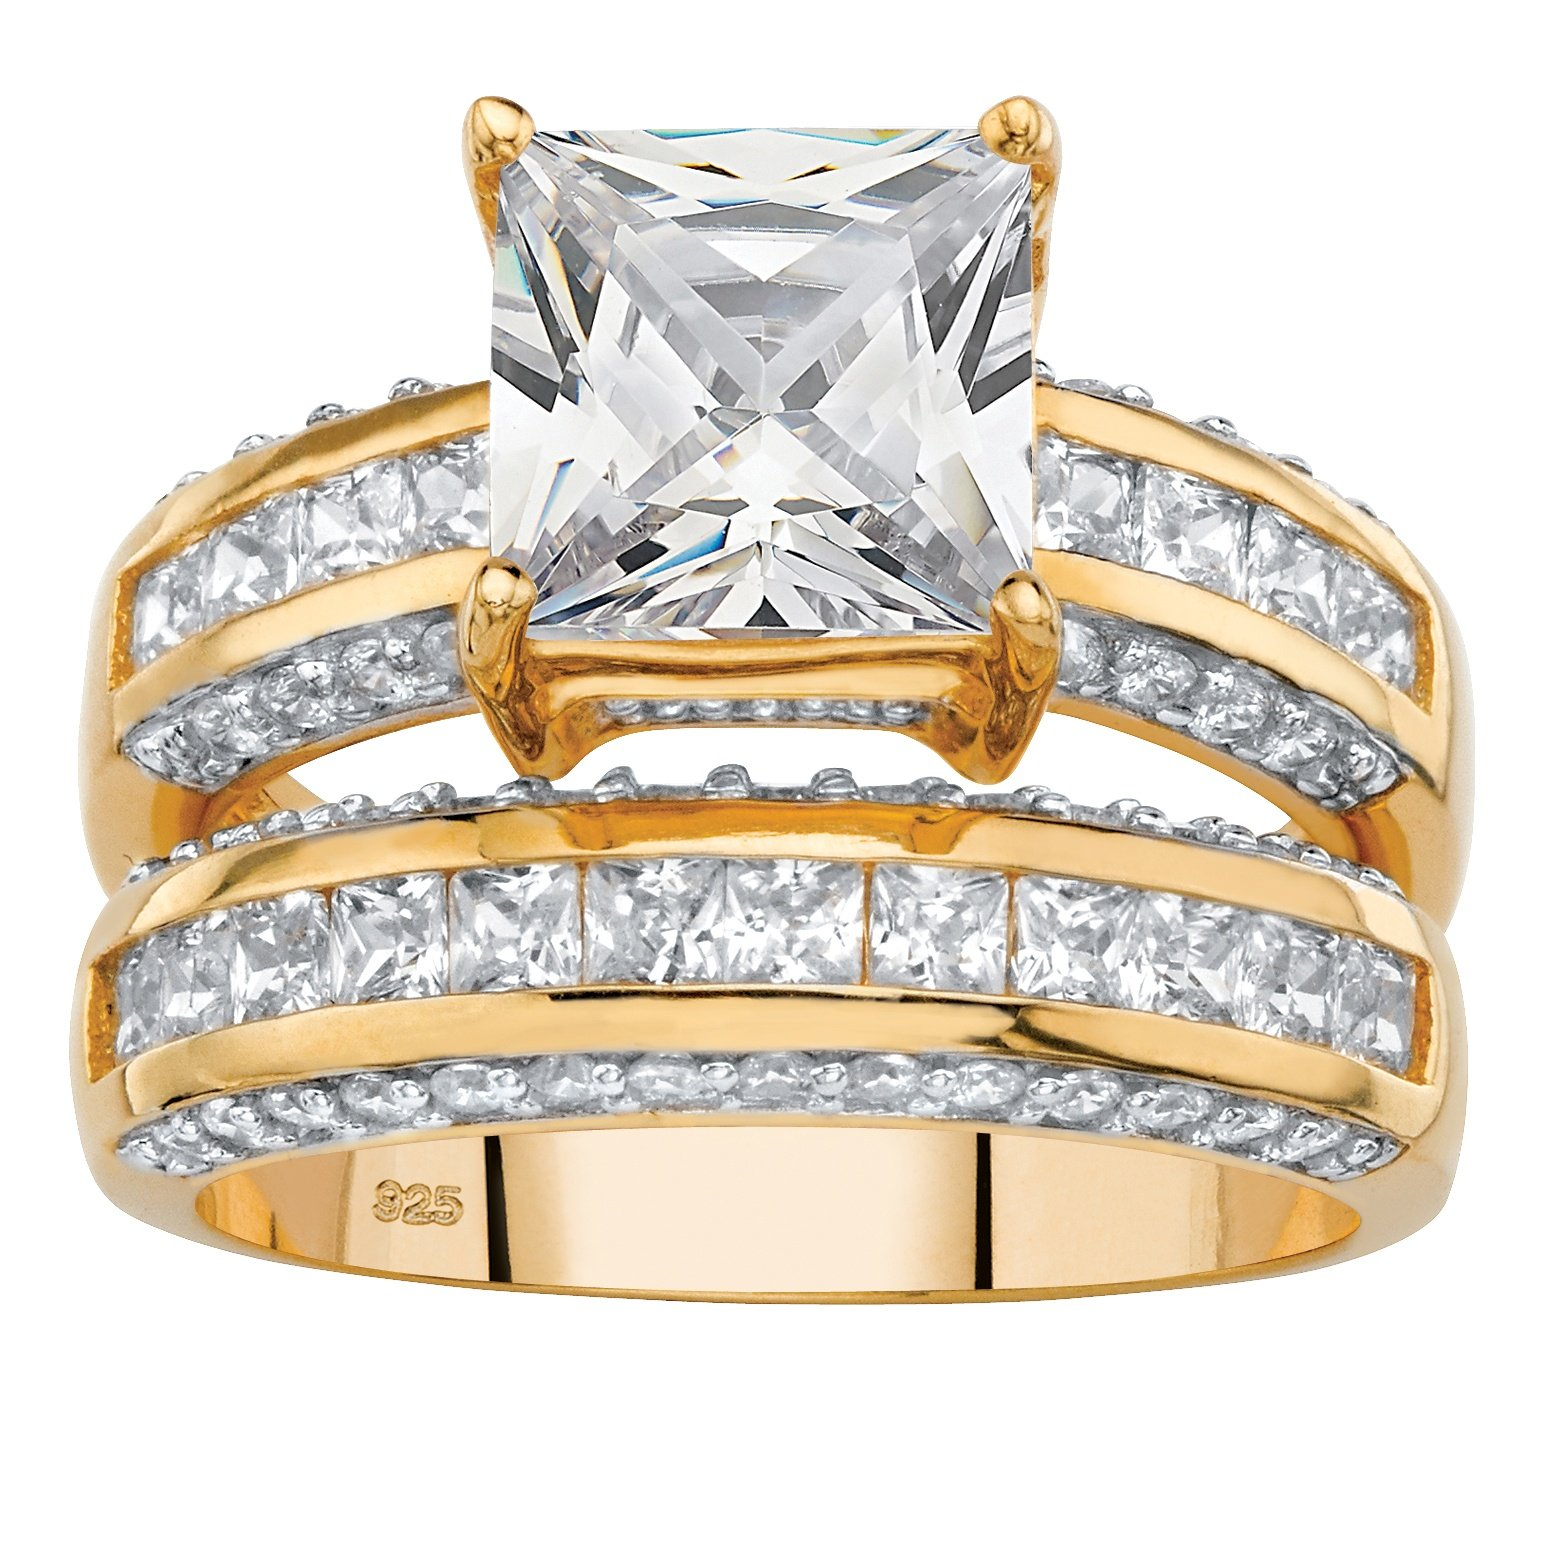 Princess-Cut White Cubic Zirconia 14k Gold over .925 Silver 2-Piece Bridal Ring Set Size 10